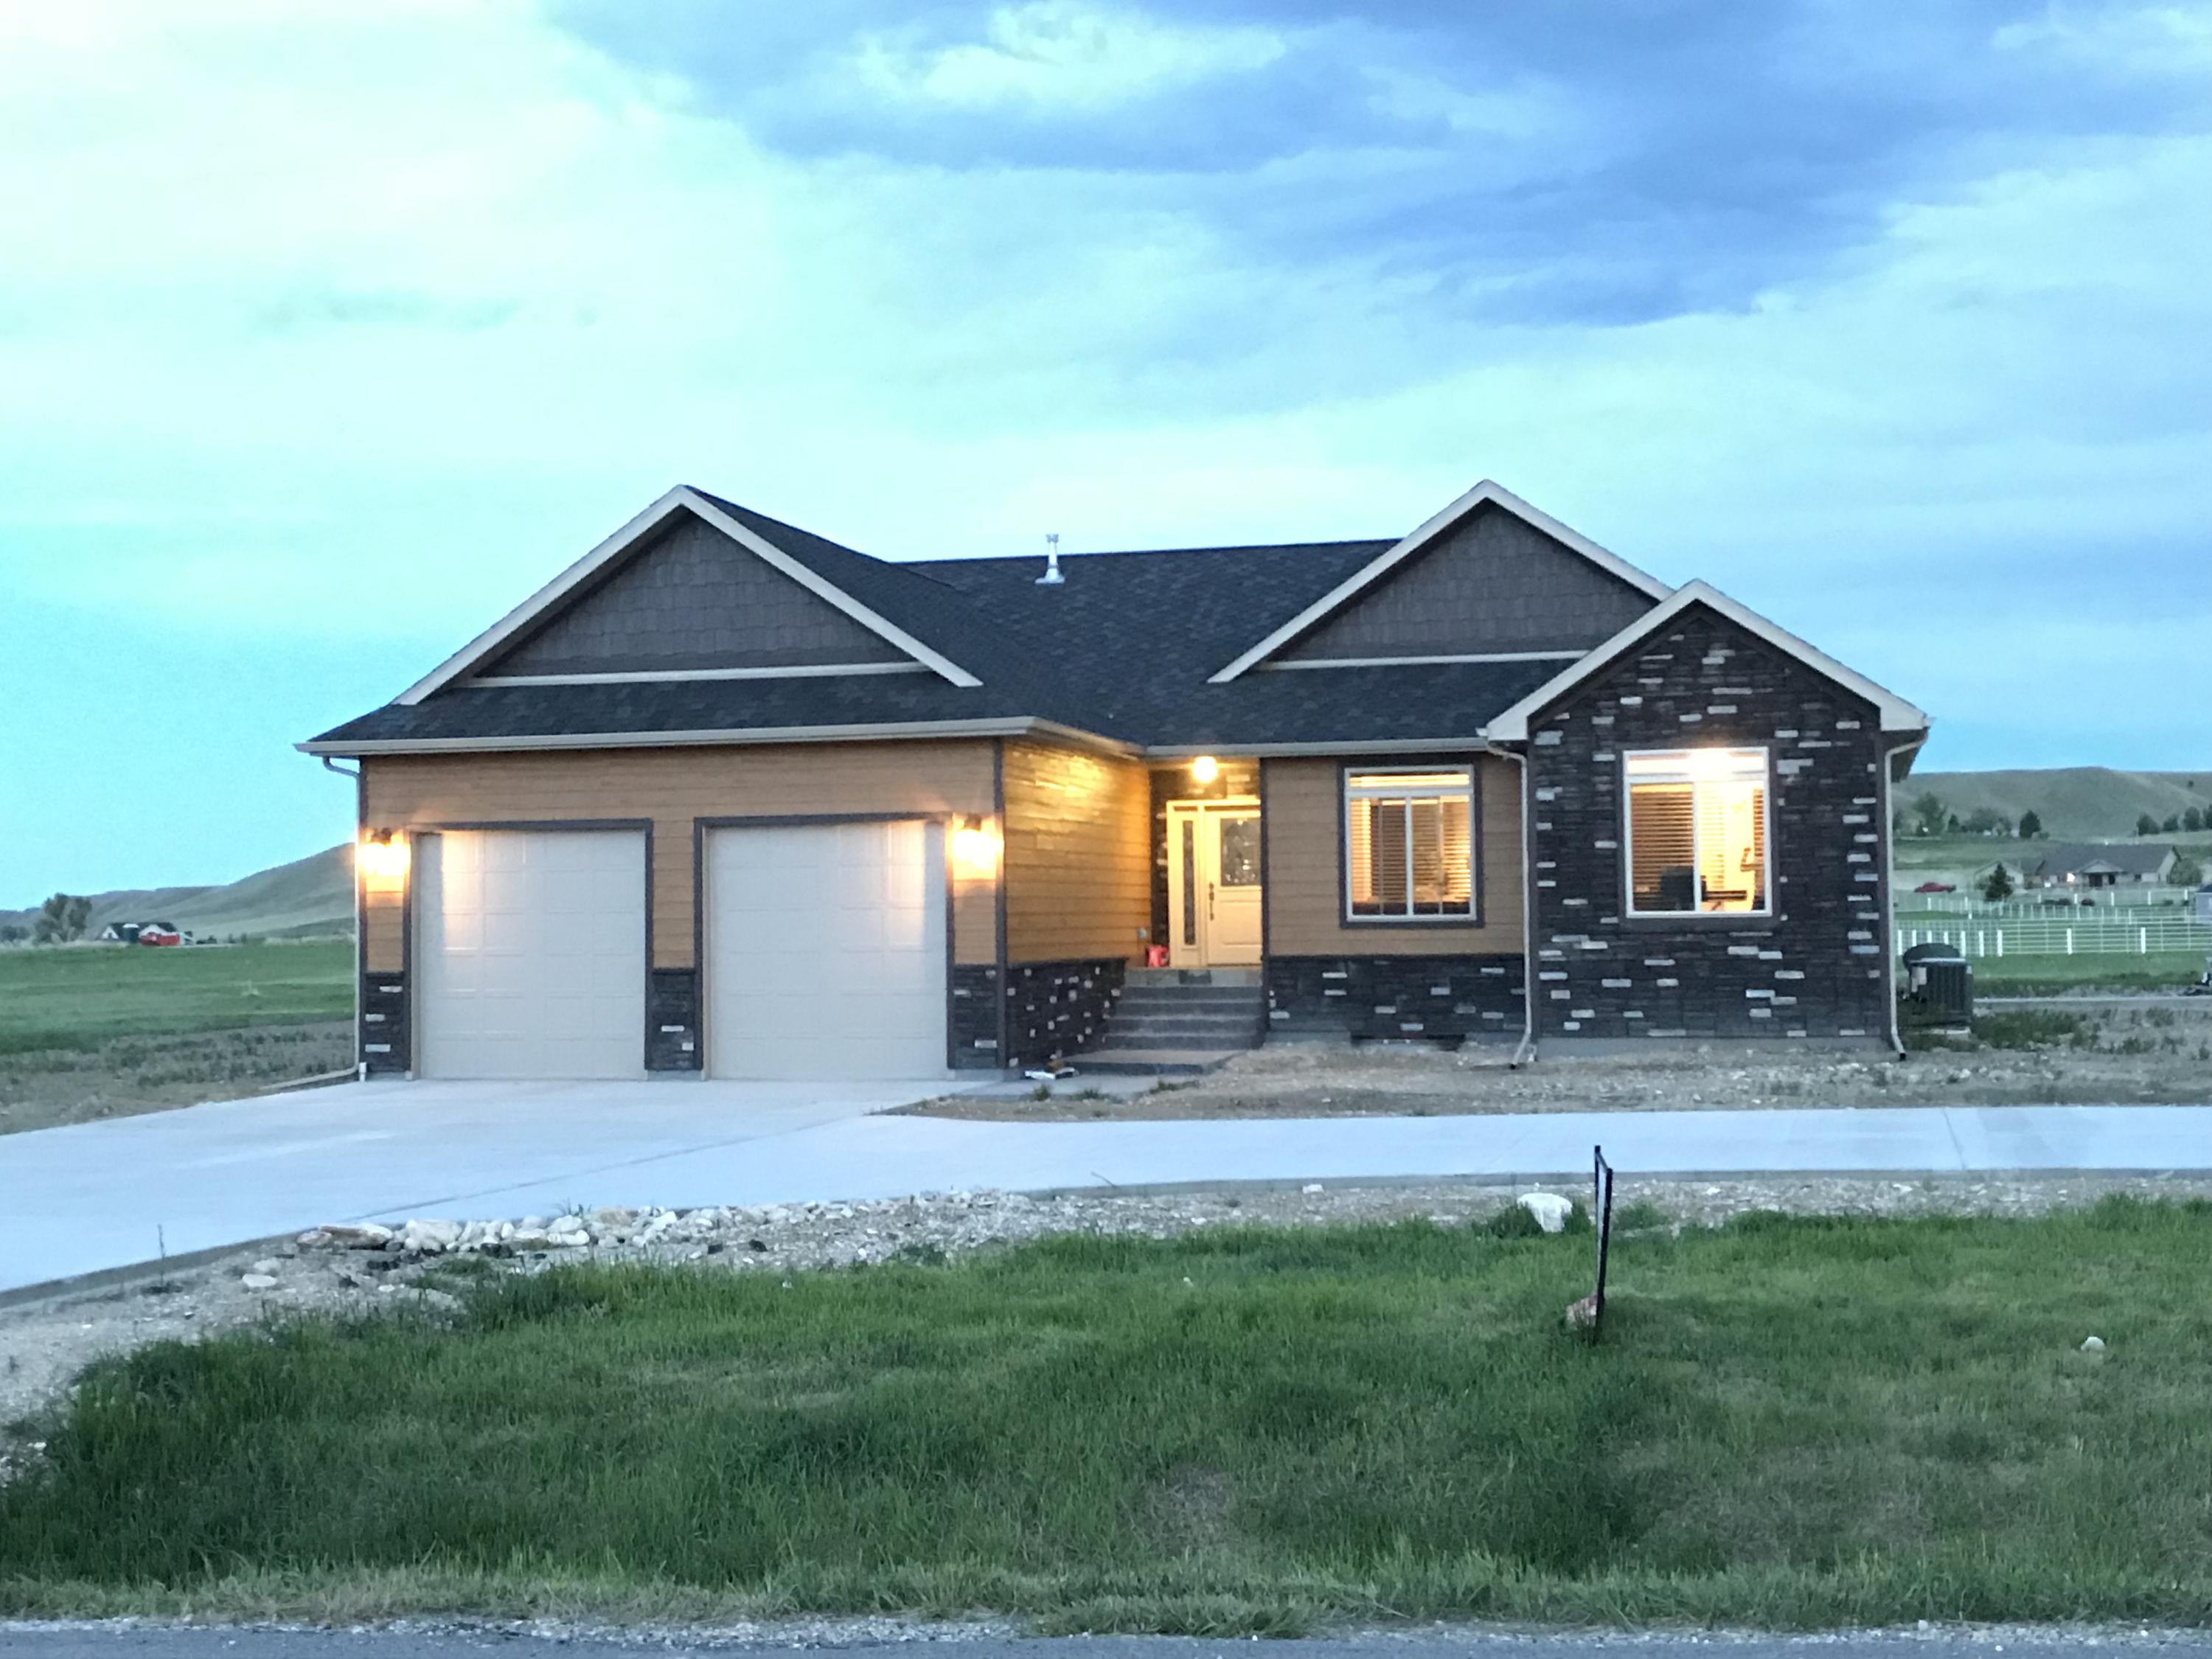 46 Amber Drive, Buffalo, Wyoming 82834, 7 Bedrooms Bedrooms, ,3 BathroomsBathrooms,Residential,For Sale,Amber,18-45